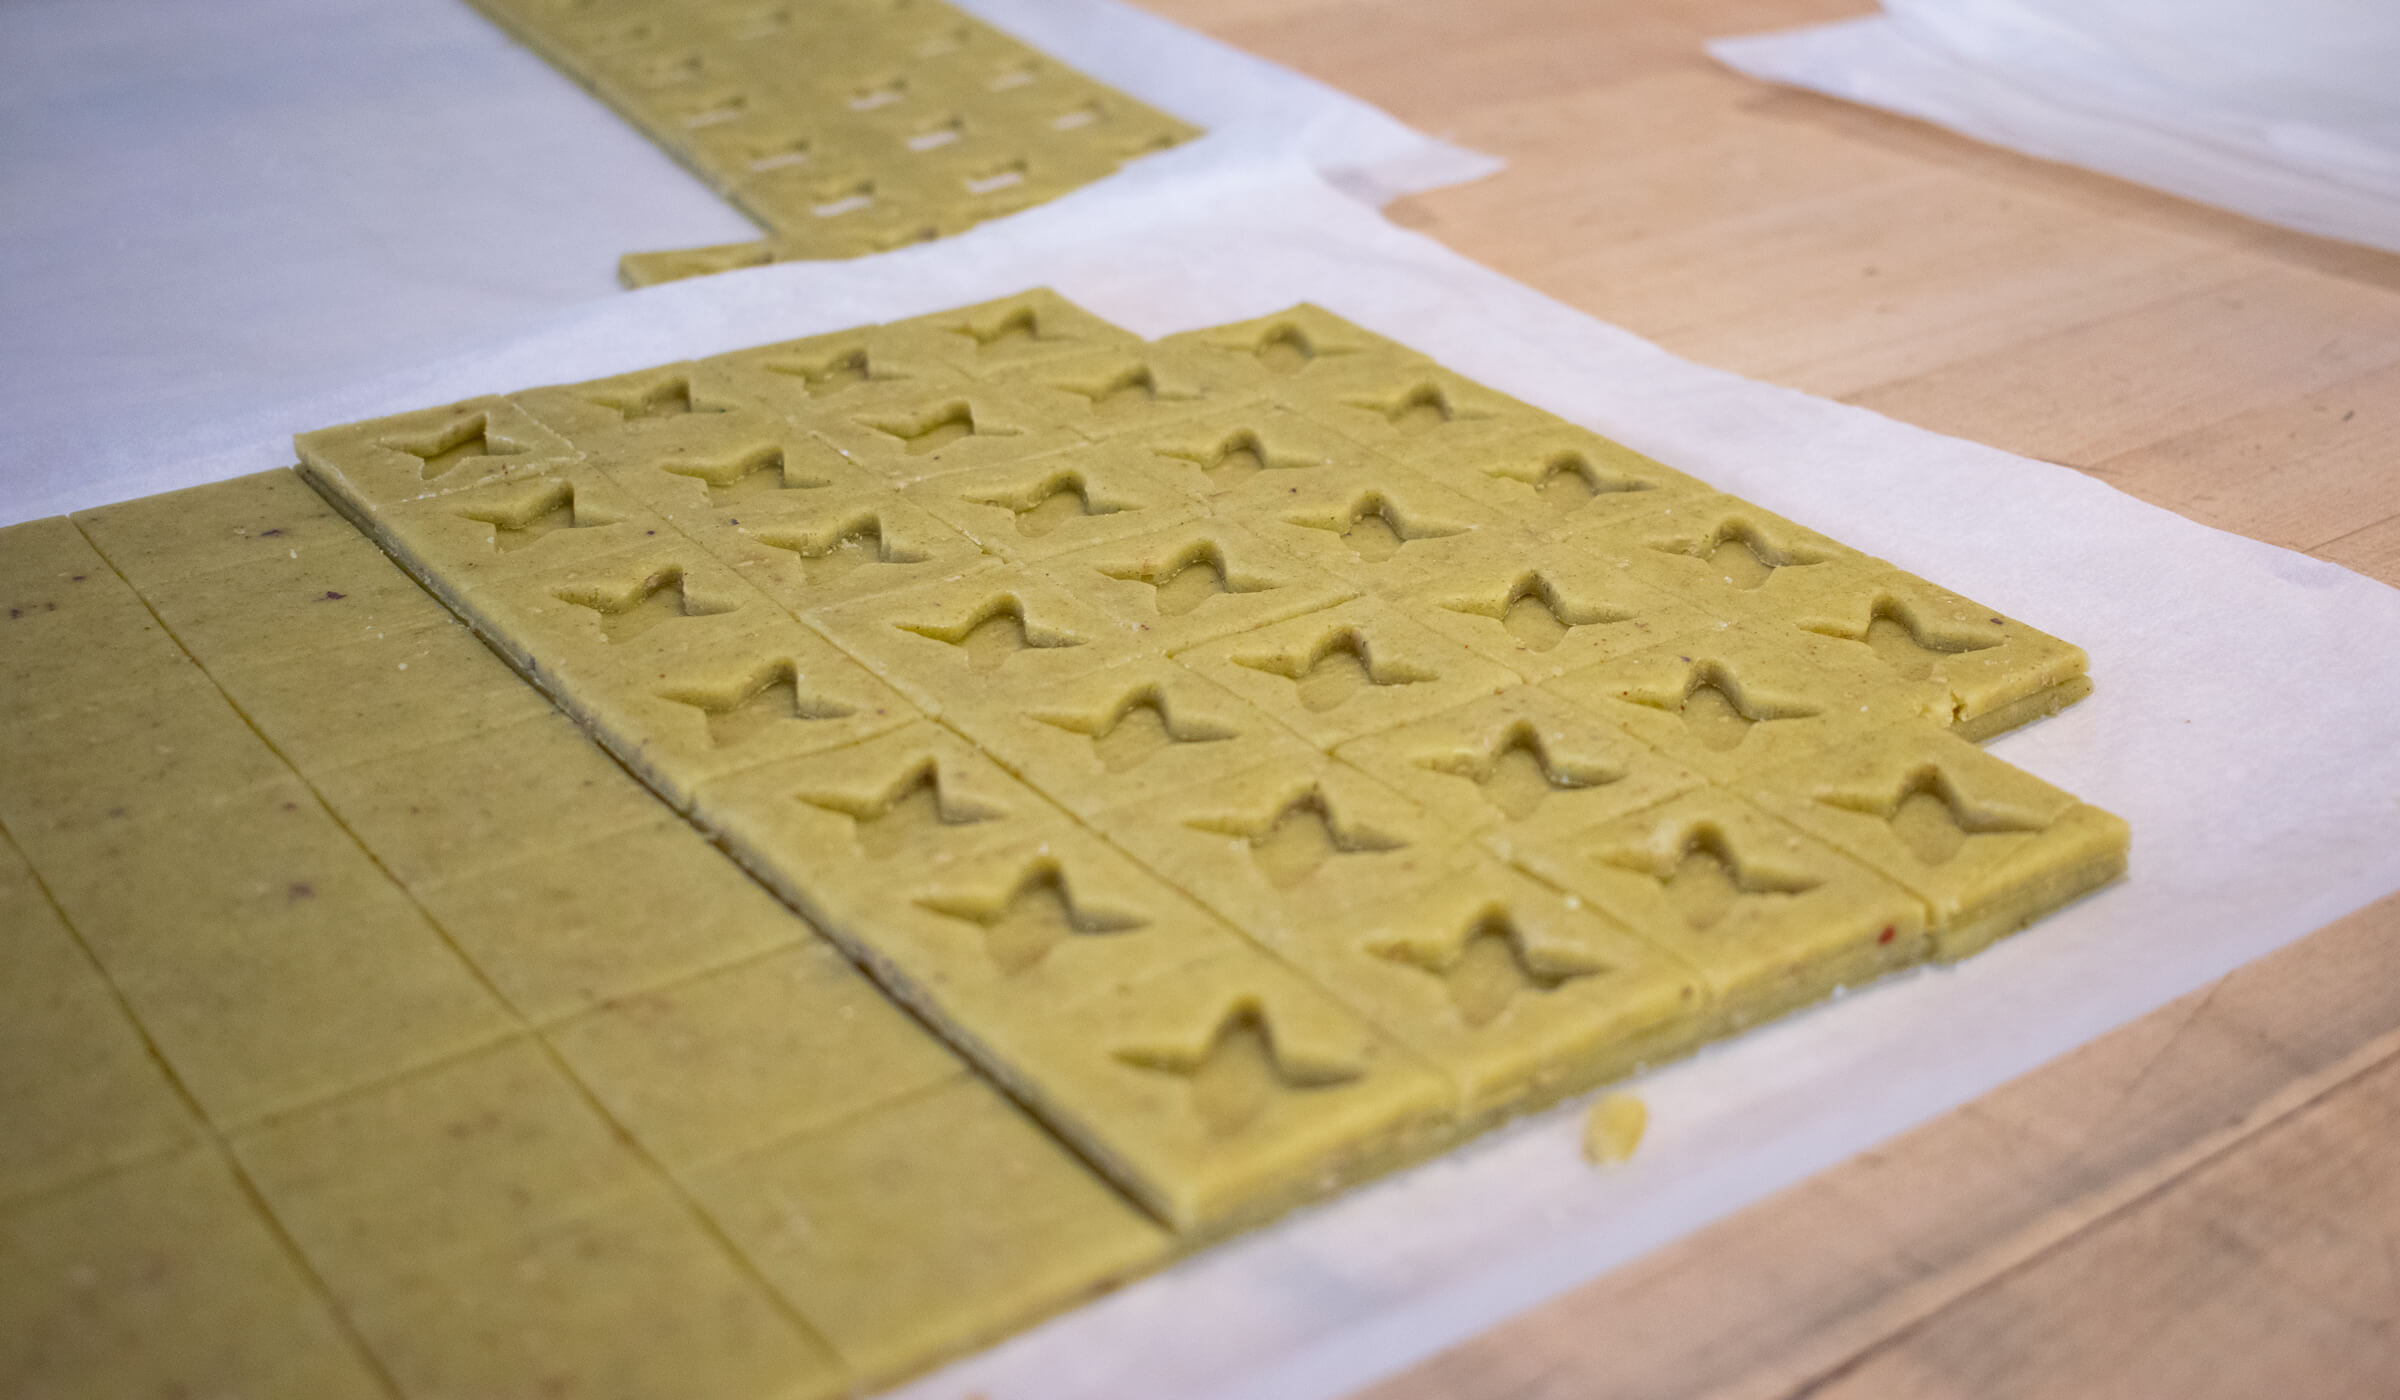 Cookies being made at La Boite in New York City